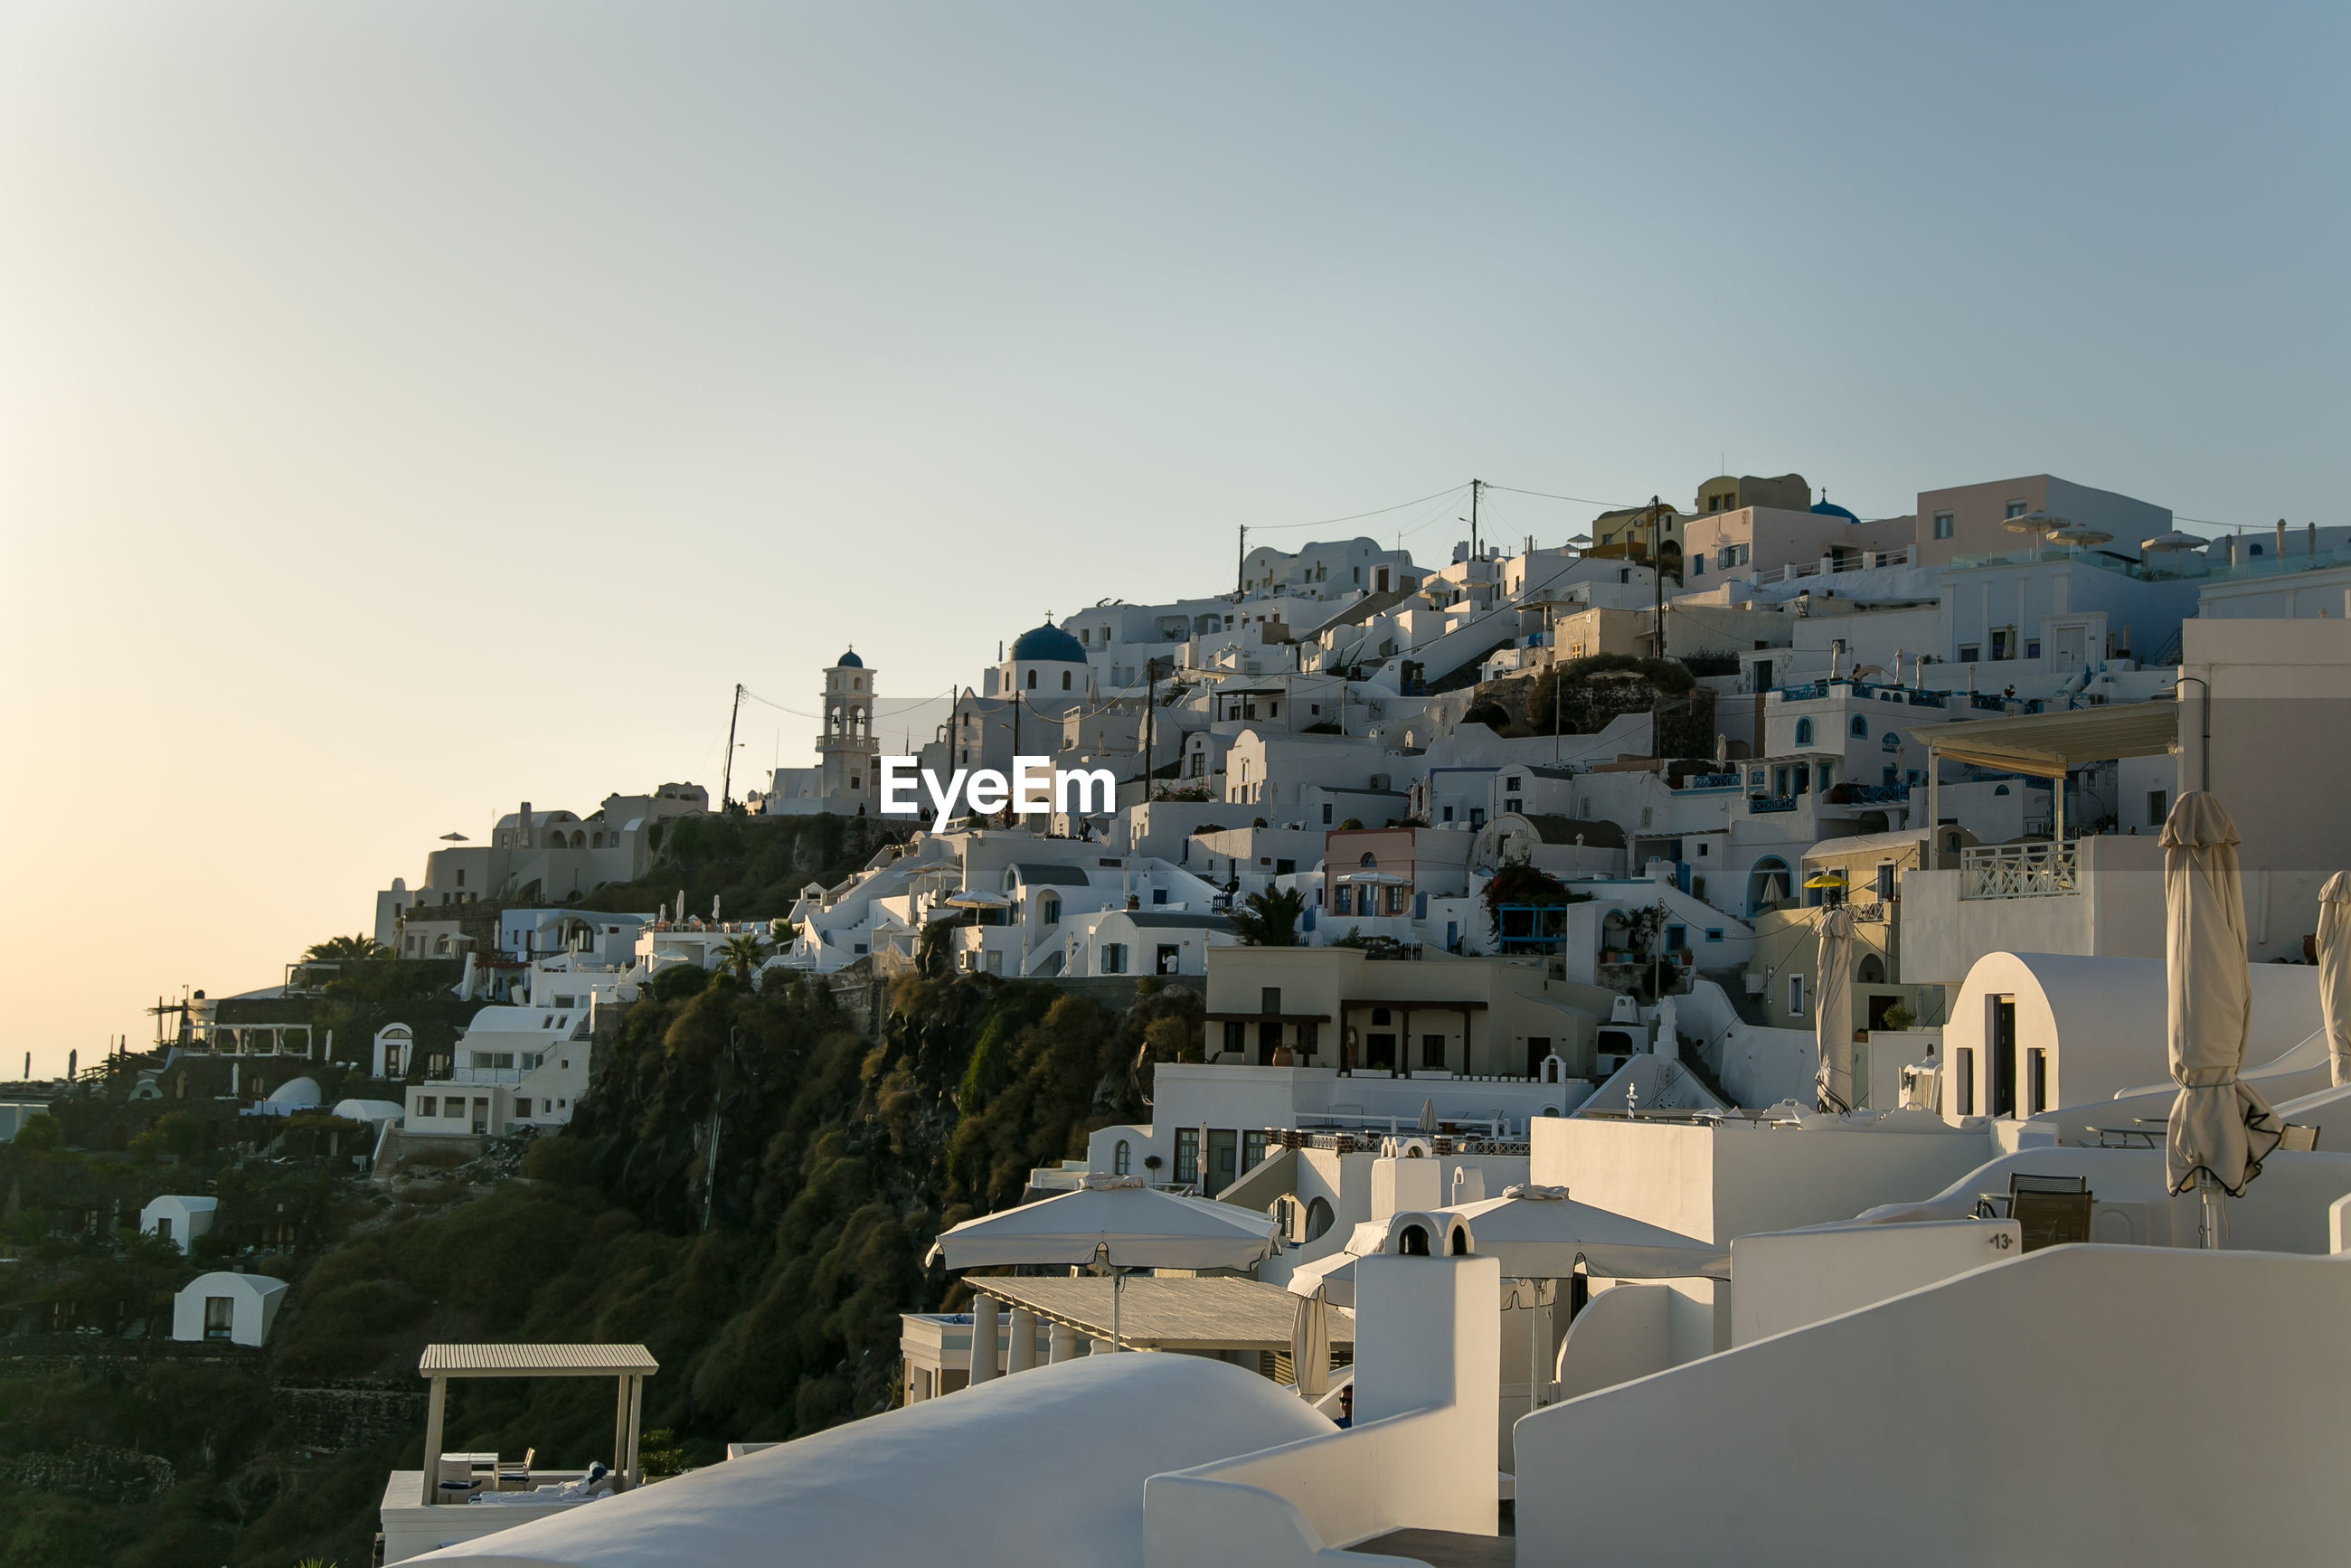 Low angle view of buildings on mountain against clear sky during sunset